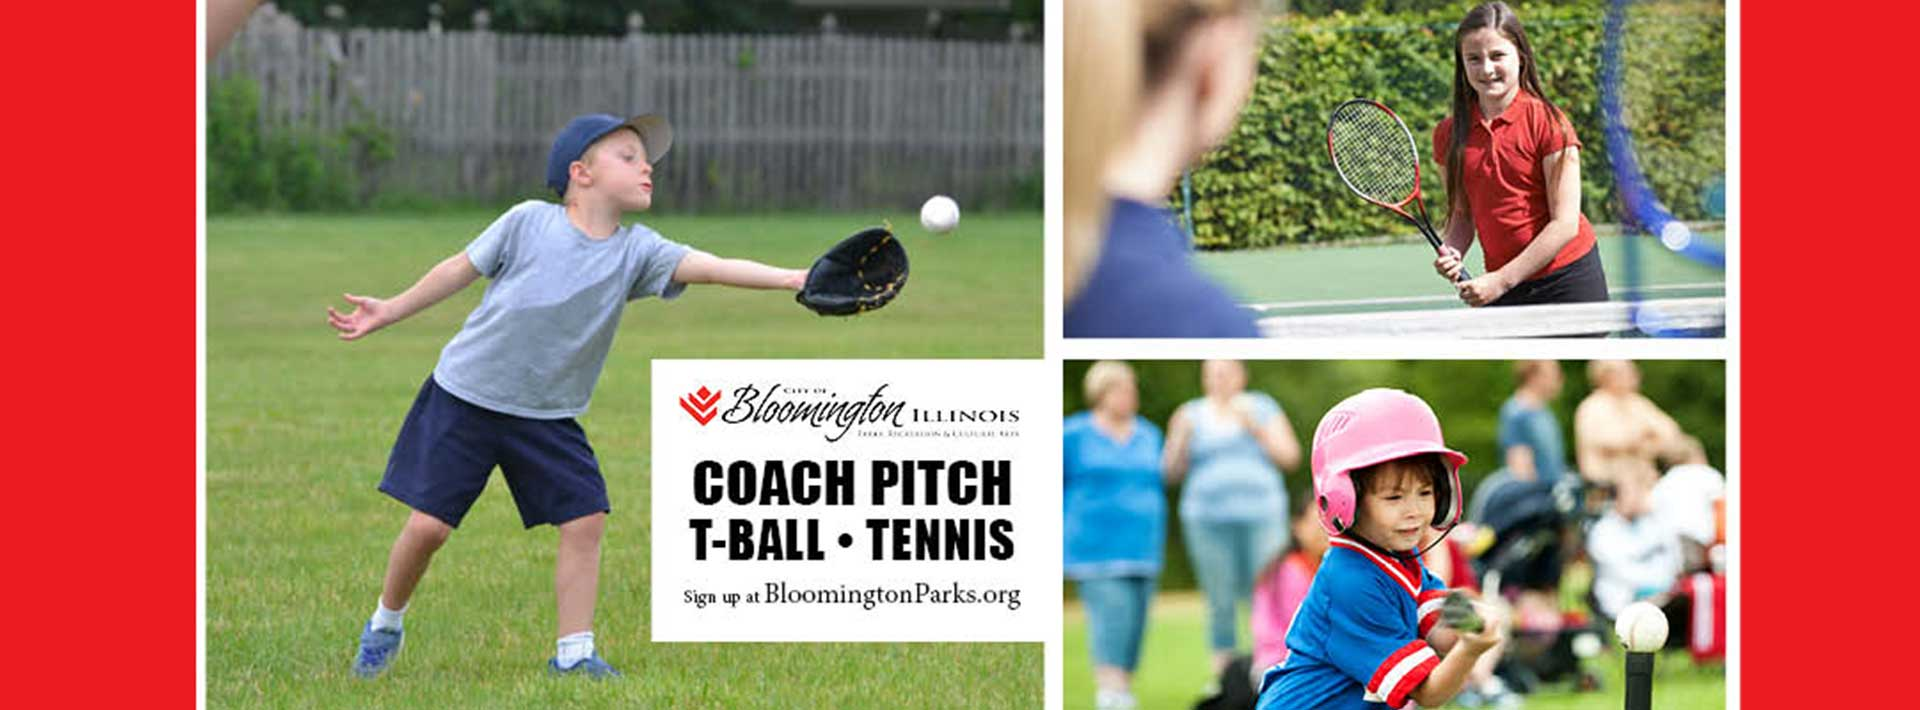 coach-pitch-tball-tennis-registration